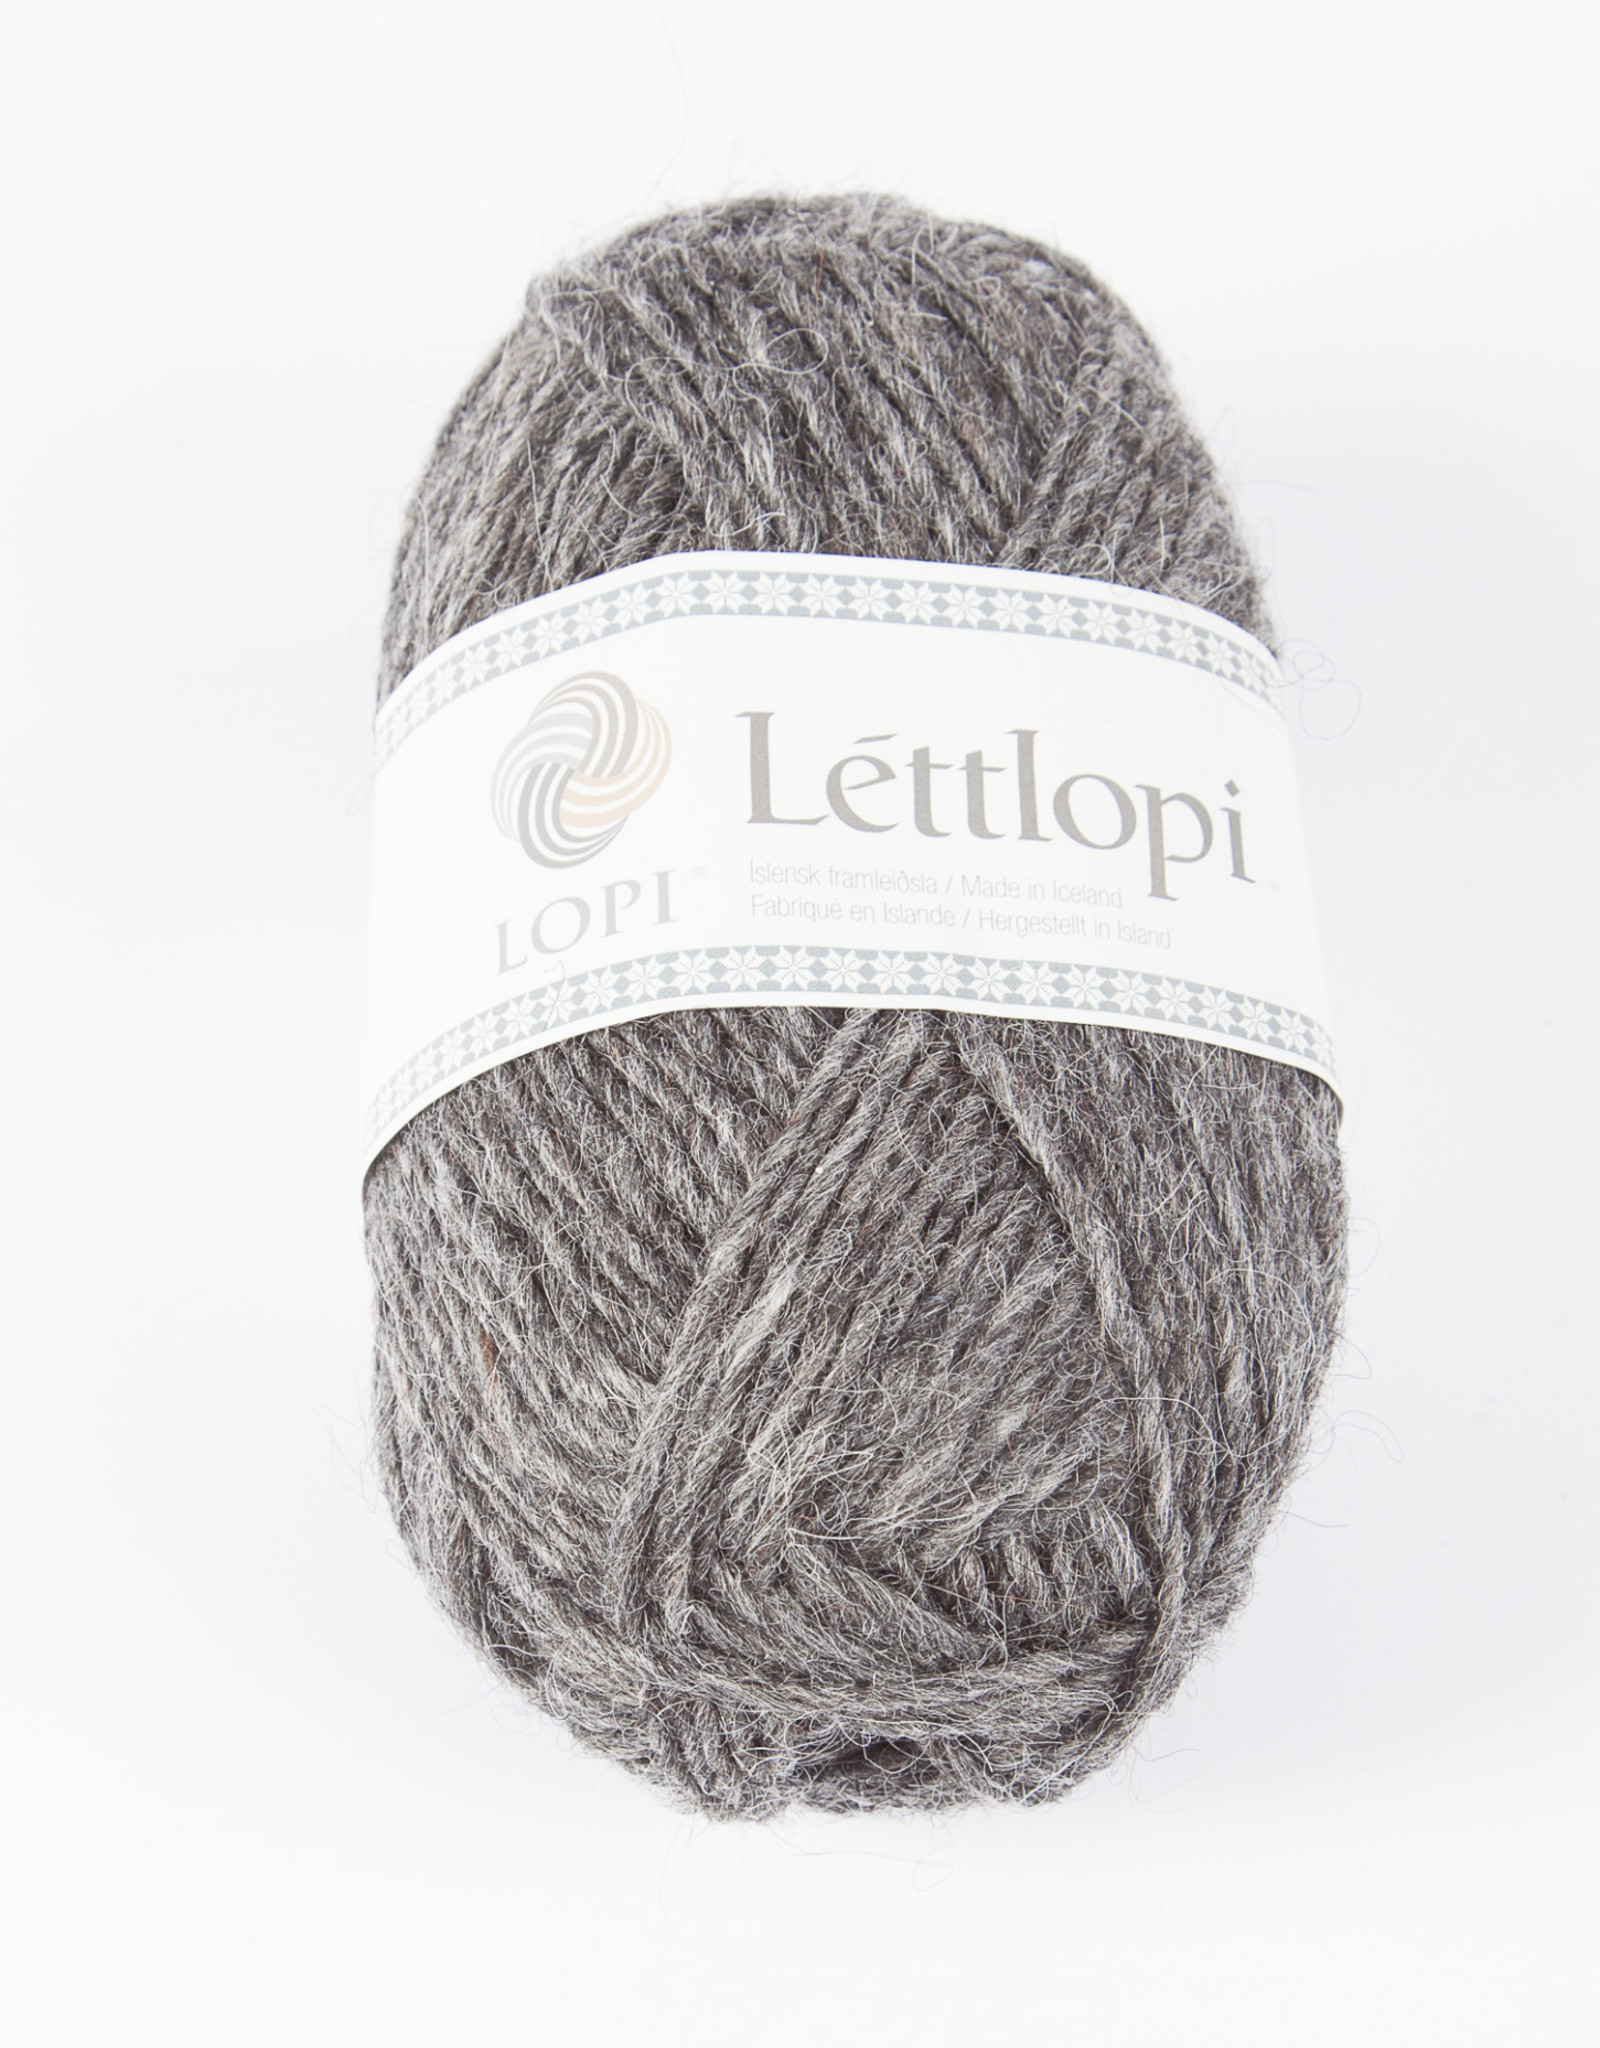 Lettlopi 50g 58 dark gray heather